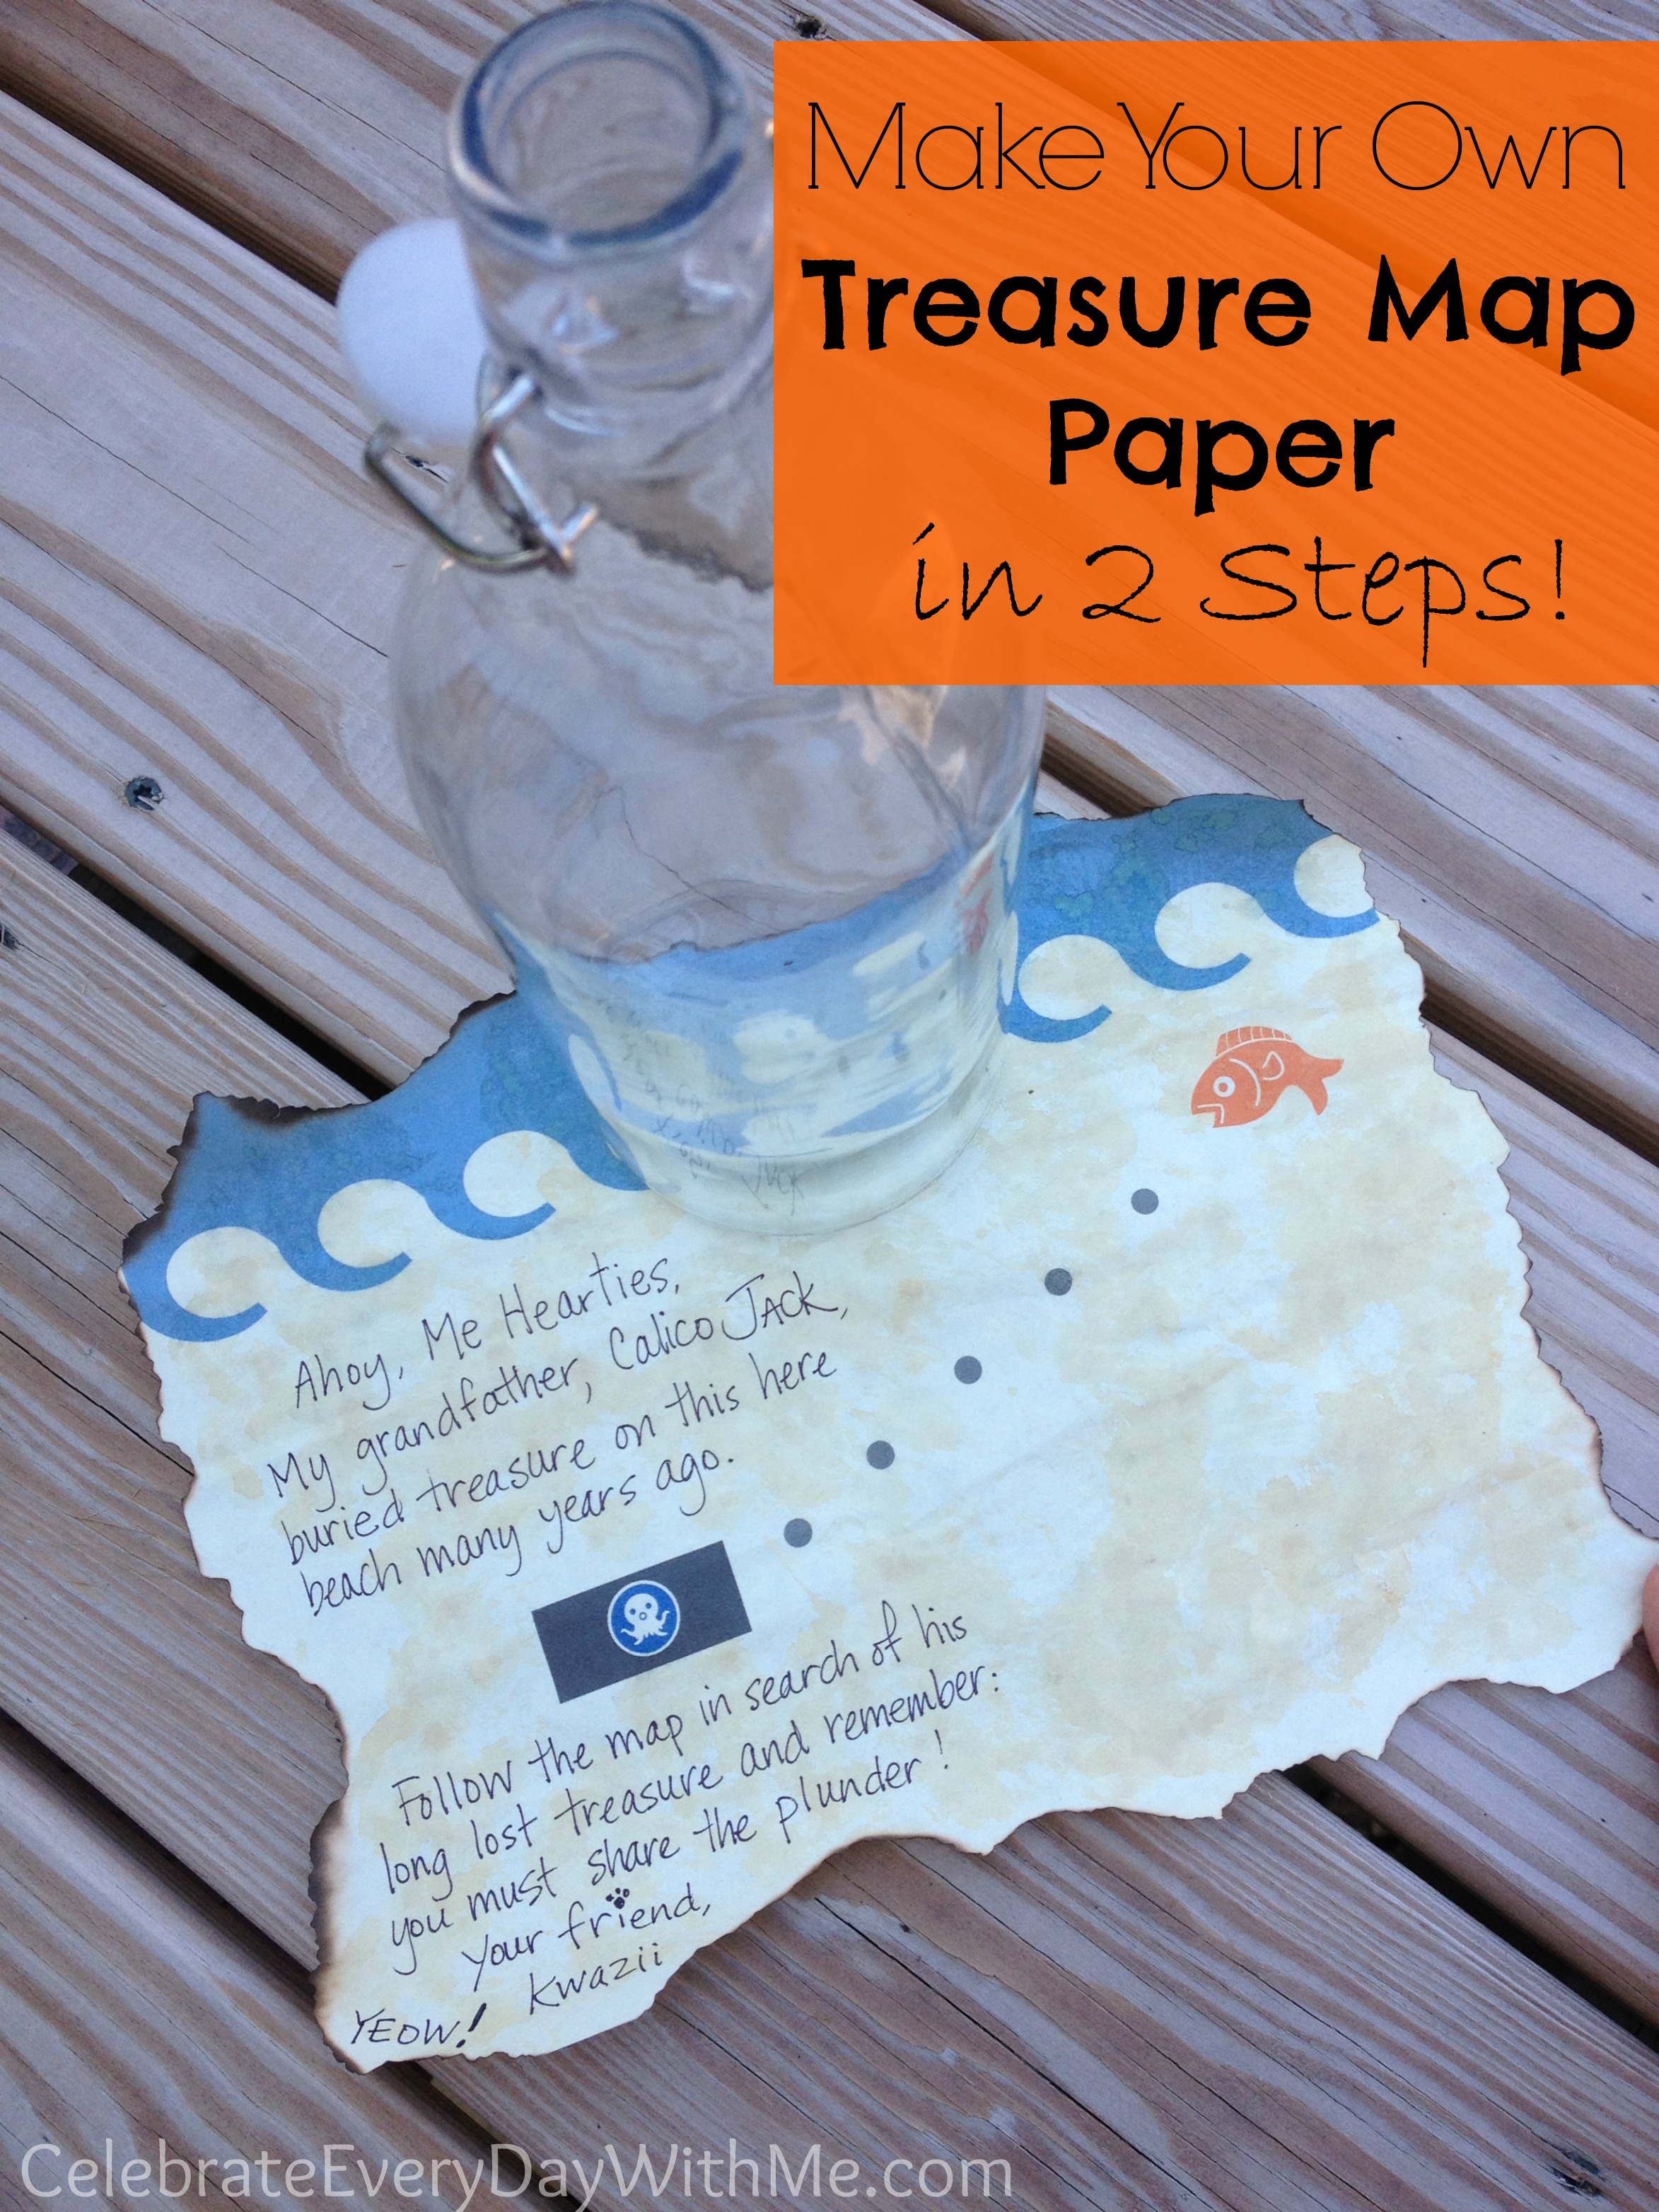 Watch How to Make a Treasure Map video